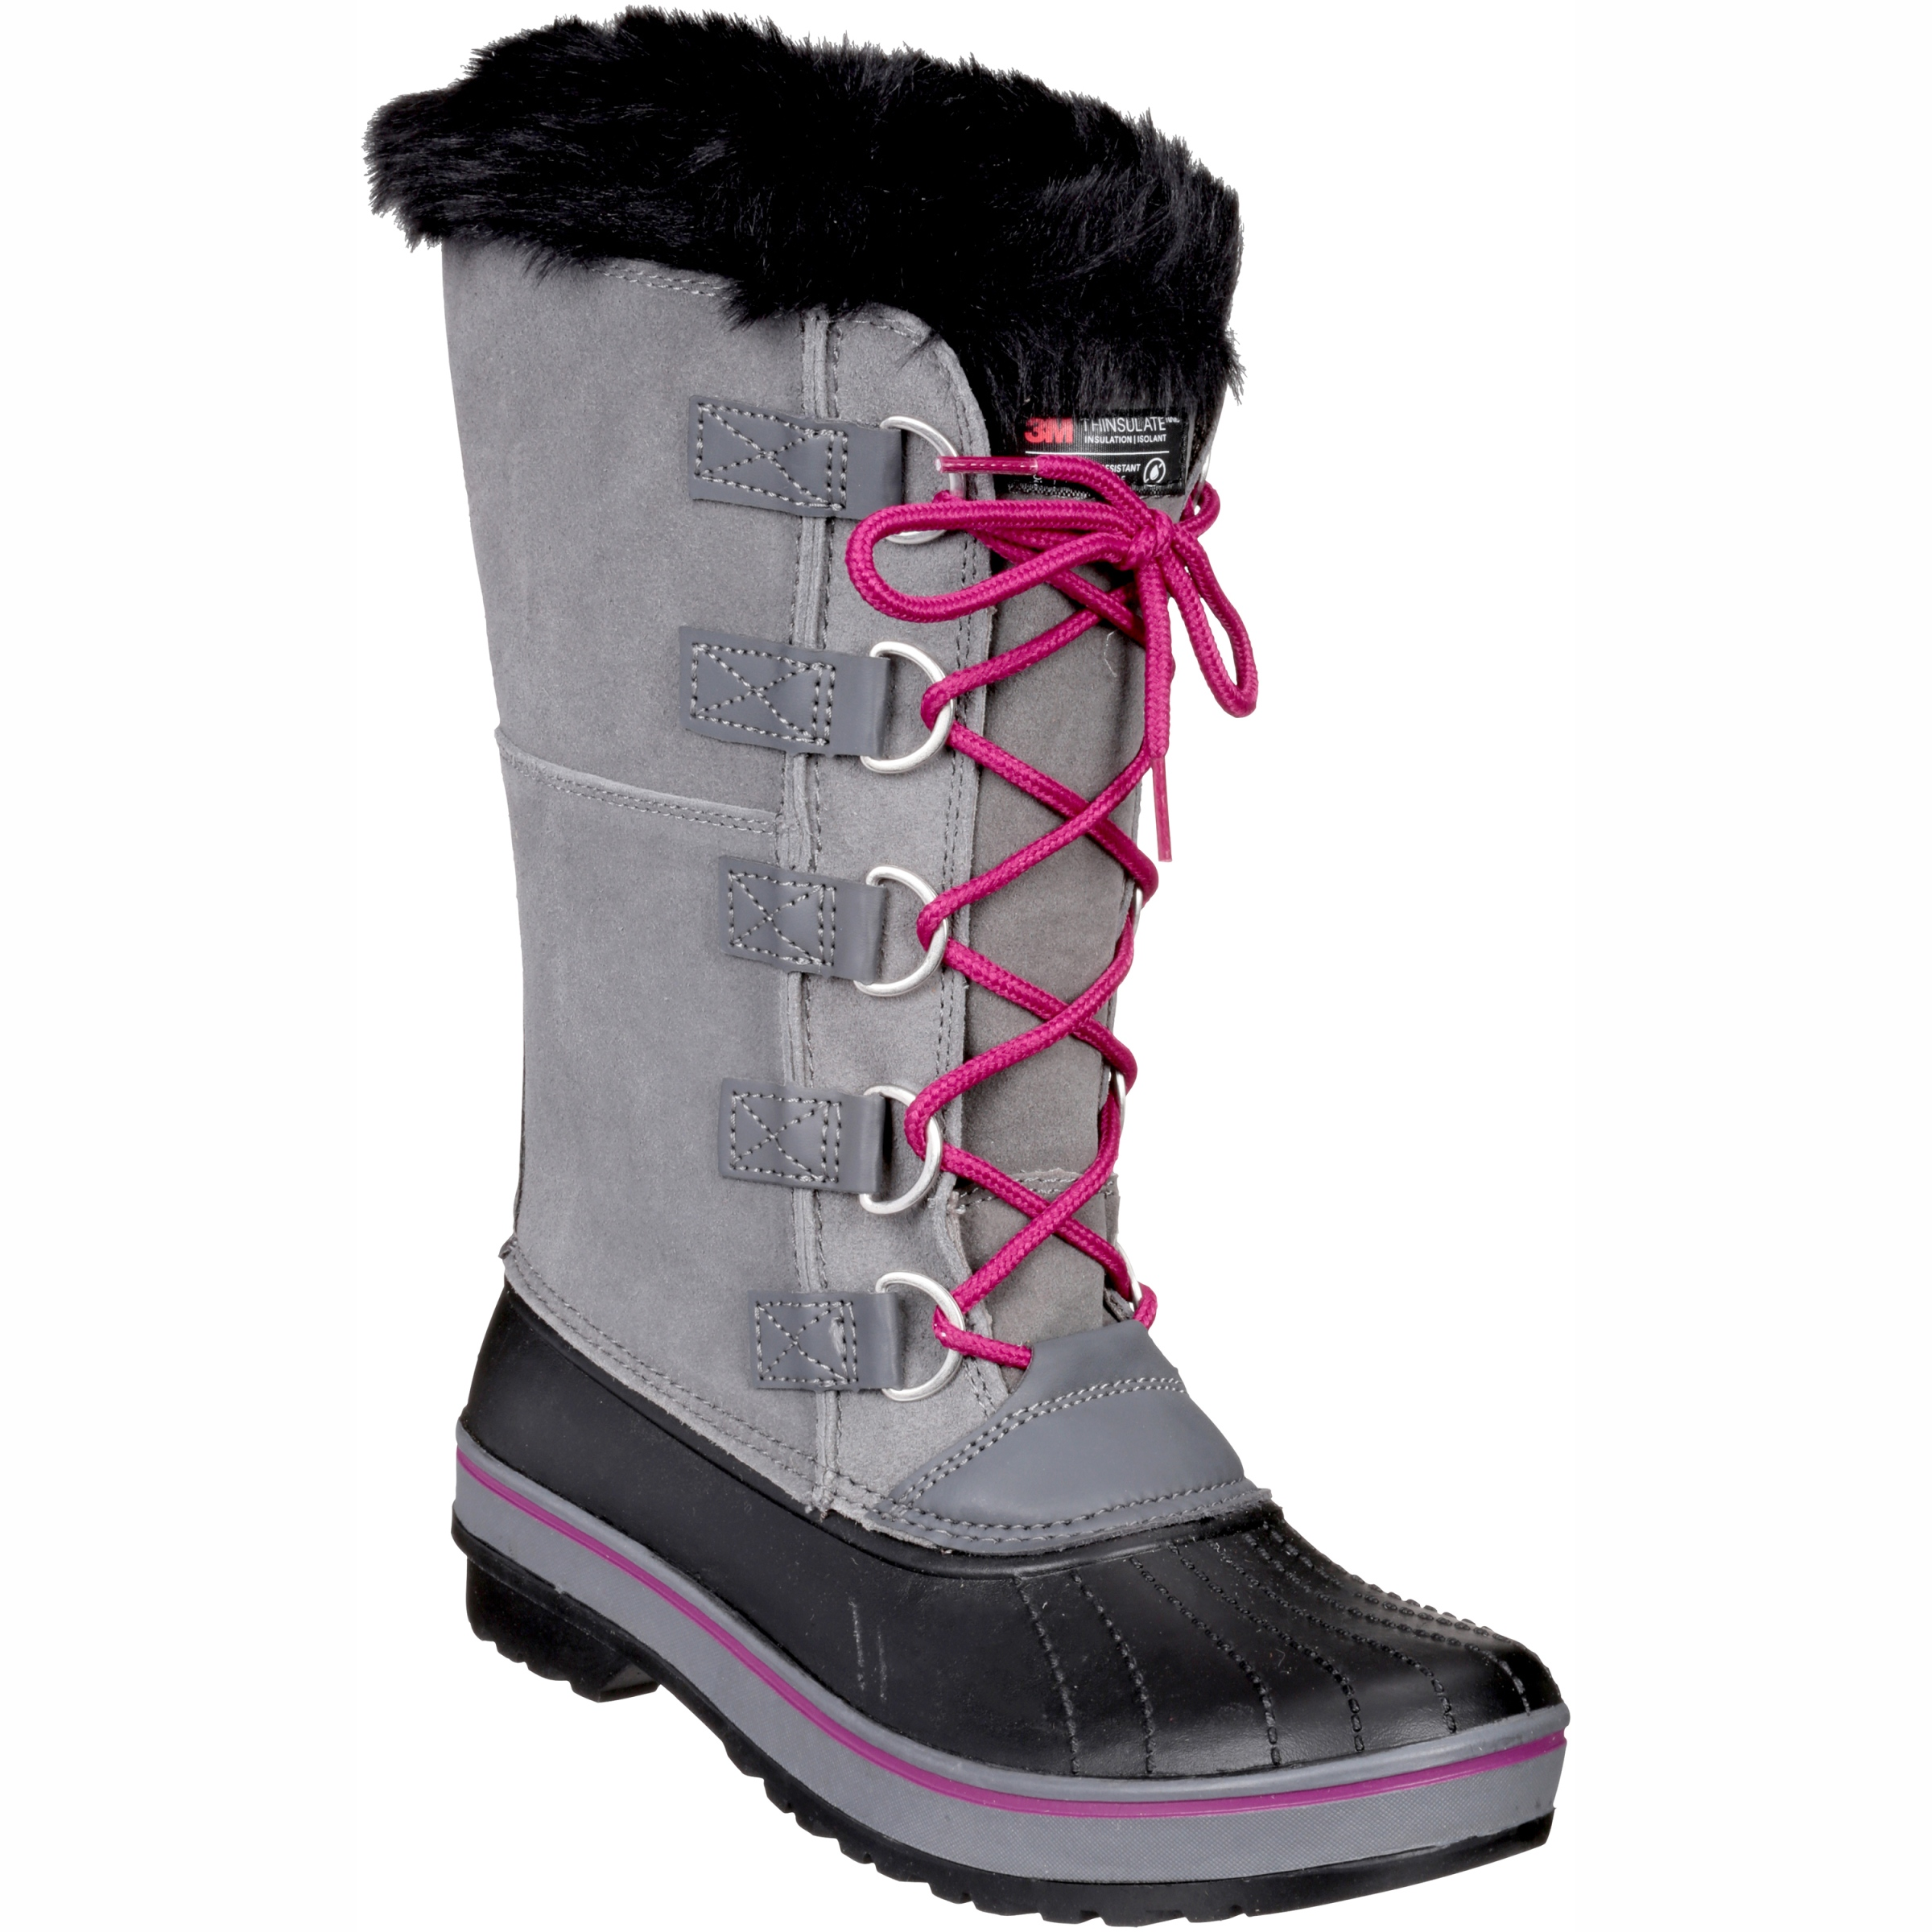 Ozark Trail Women's Tall Lace Up Winter Boot